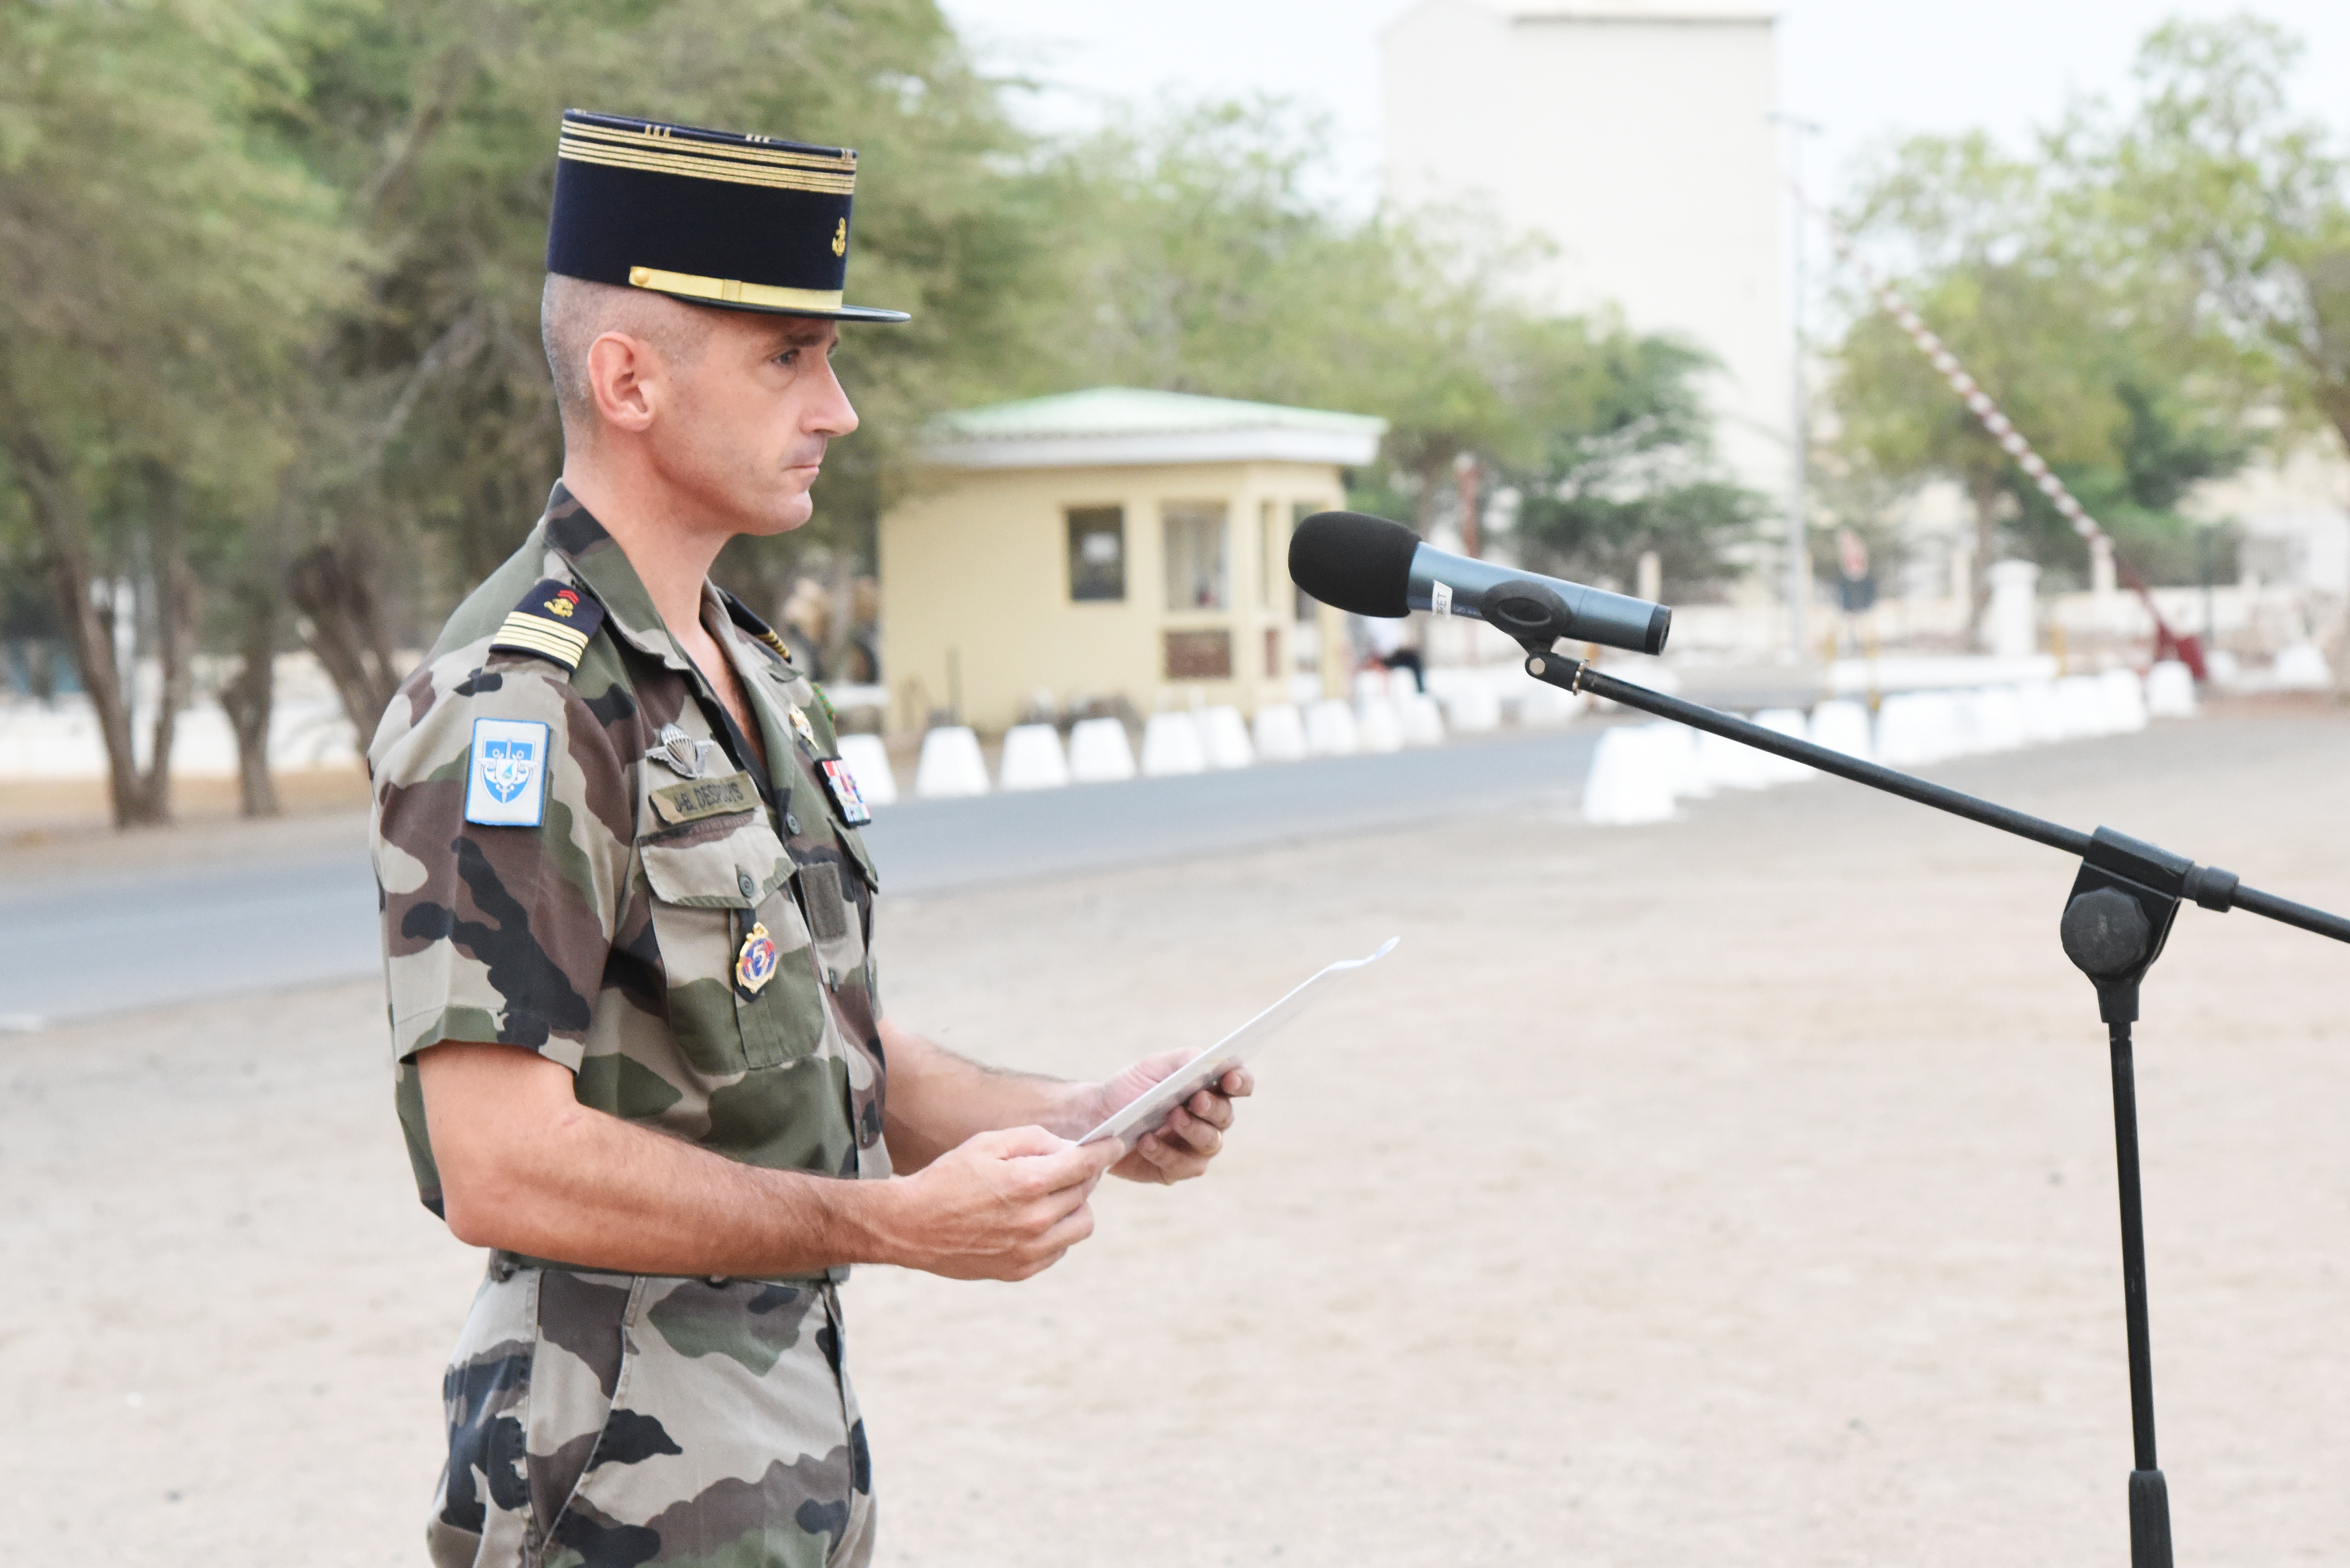 French Marine Col. Jean-Bruno Despouys, 5th Marines commanding officer, addresses French and U.S. troops during an award ceremony at a Naval base in Djibouti, June 11, 2015.  Three U.S. Army soldiers received the French National Defense Medal (Silver Level) for saving the life of a French service member during a motor vehicle accident Feb. 27, 2015.  (U.S. Air Force photo by Staff Sgt. Maria Bowman)